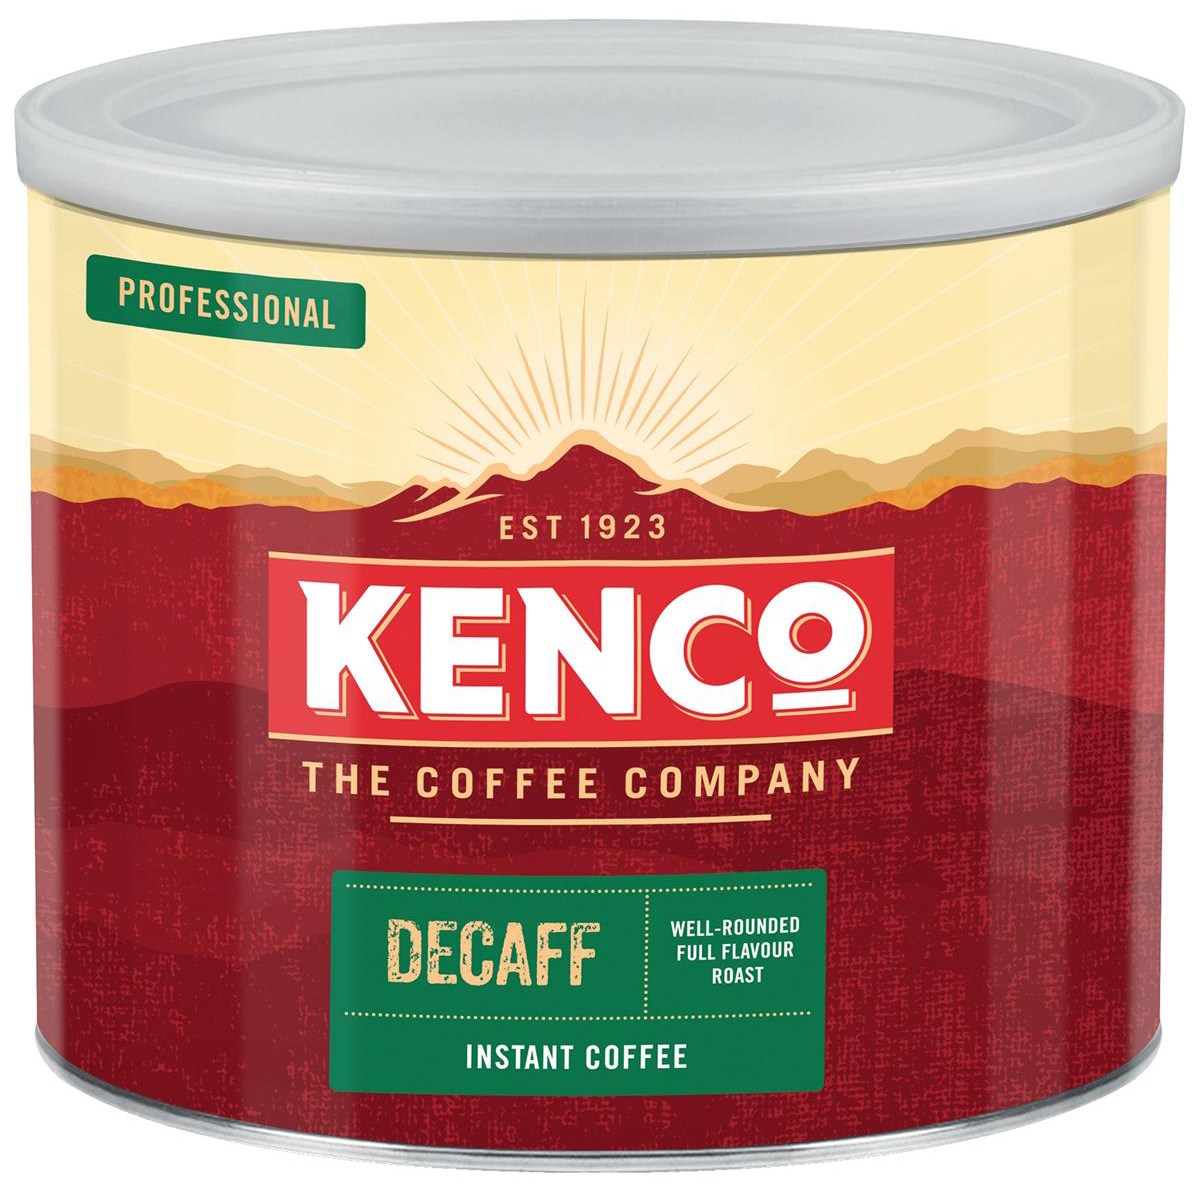 Image for Kenco Decaffeinated Instant Coffee Tin 500g Ref 4032079